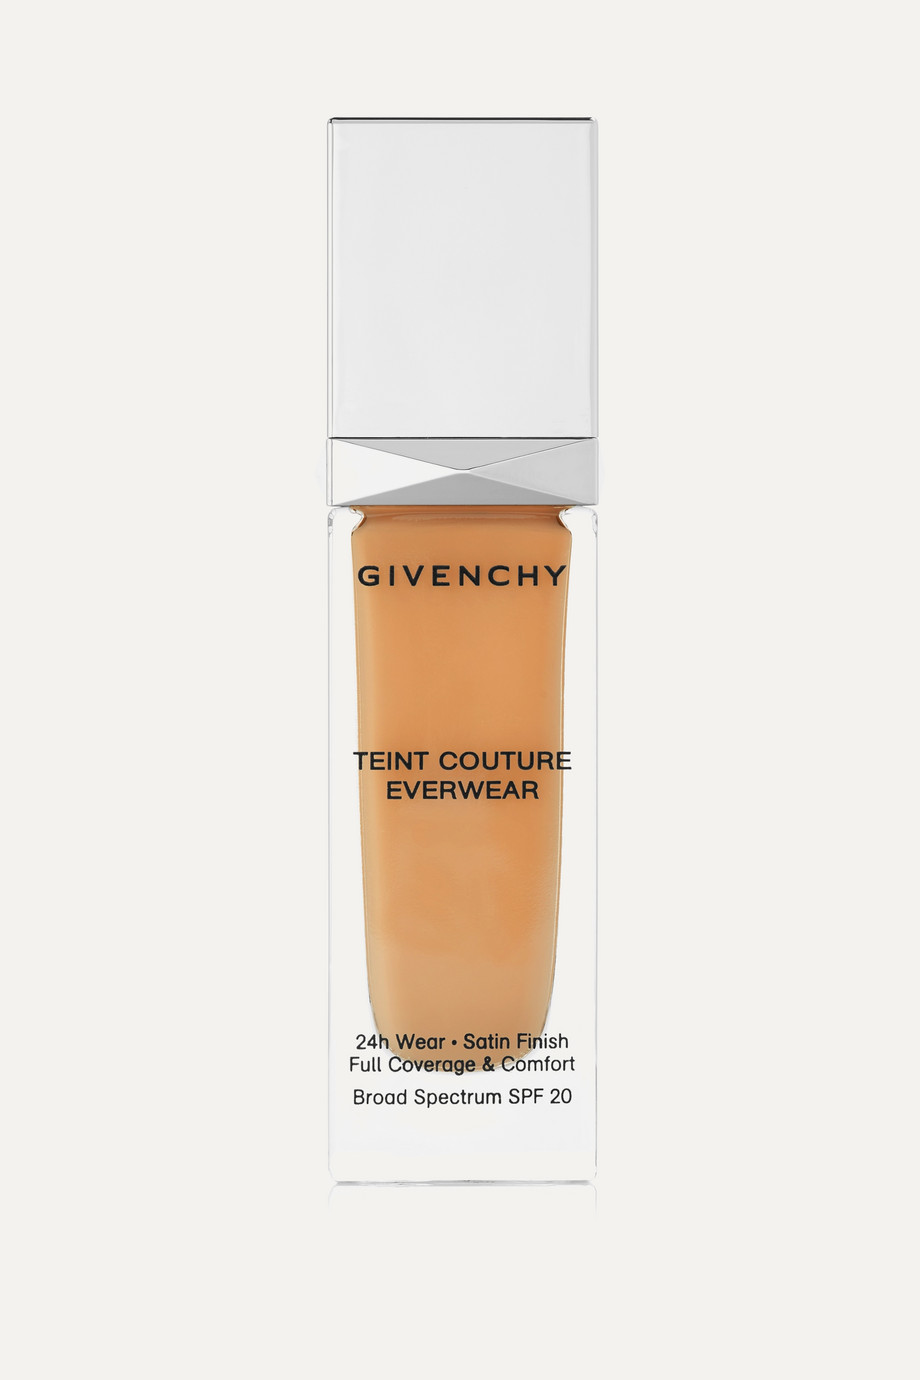 Givenchy Beauty Teint Couture Everwear Foundation SPF20 - Y300, 30ml